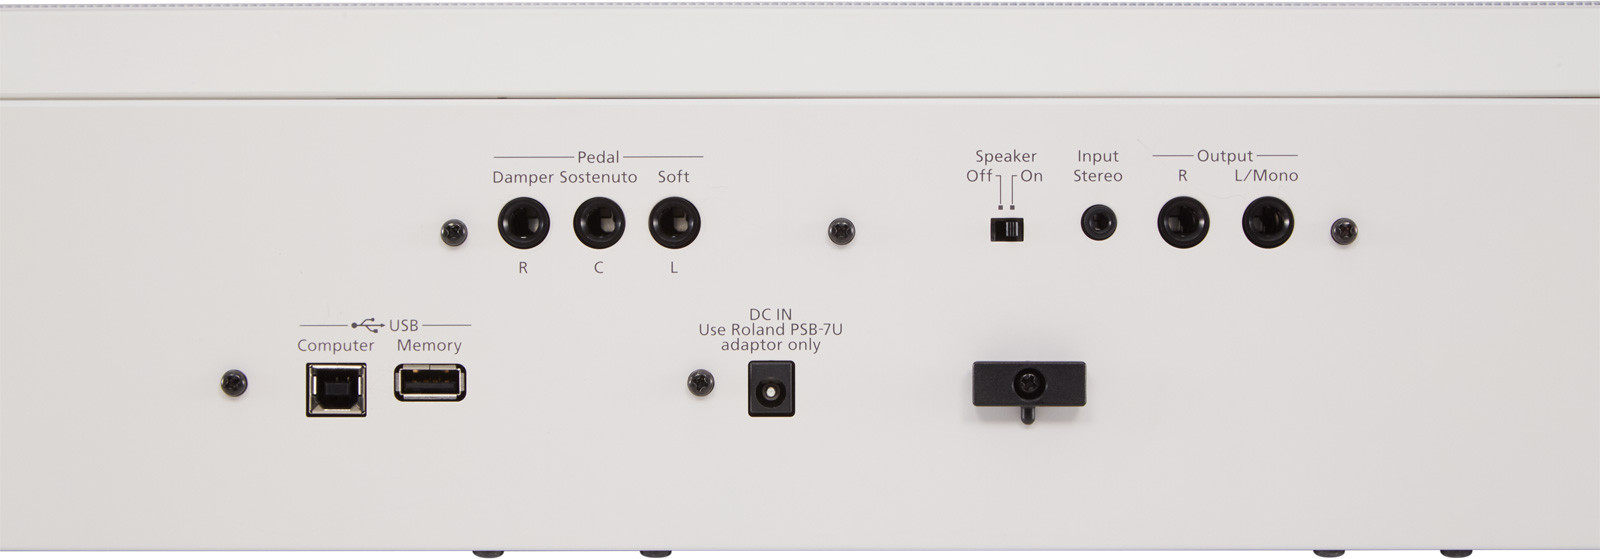 gallery_fp-60_connector_white.jpg